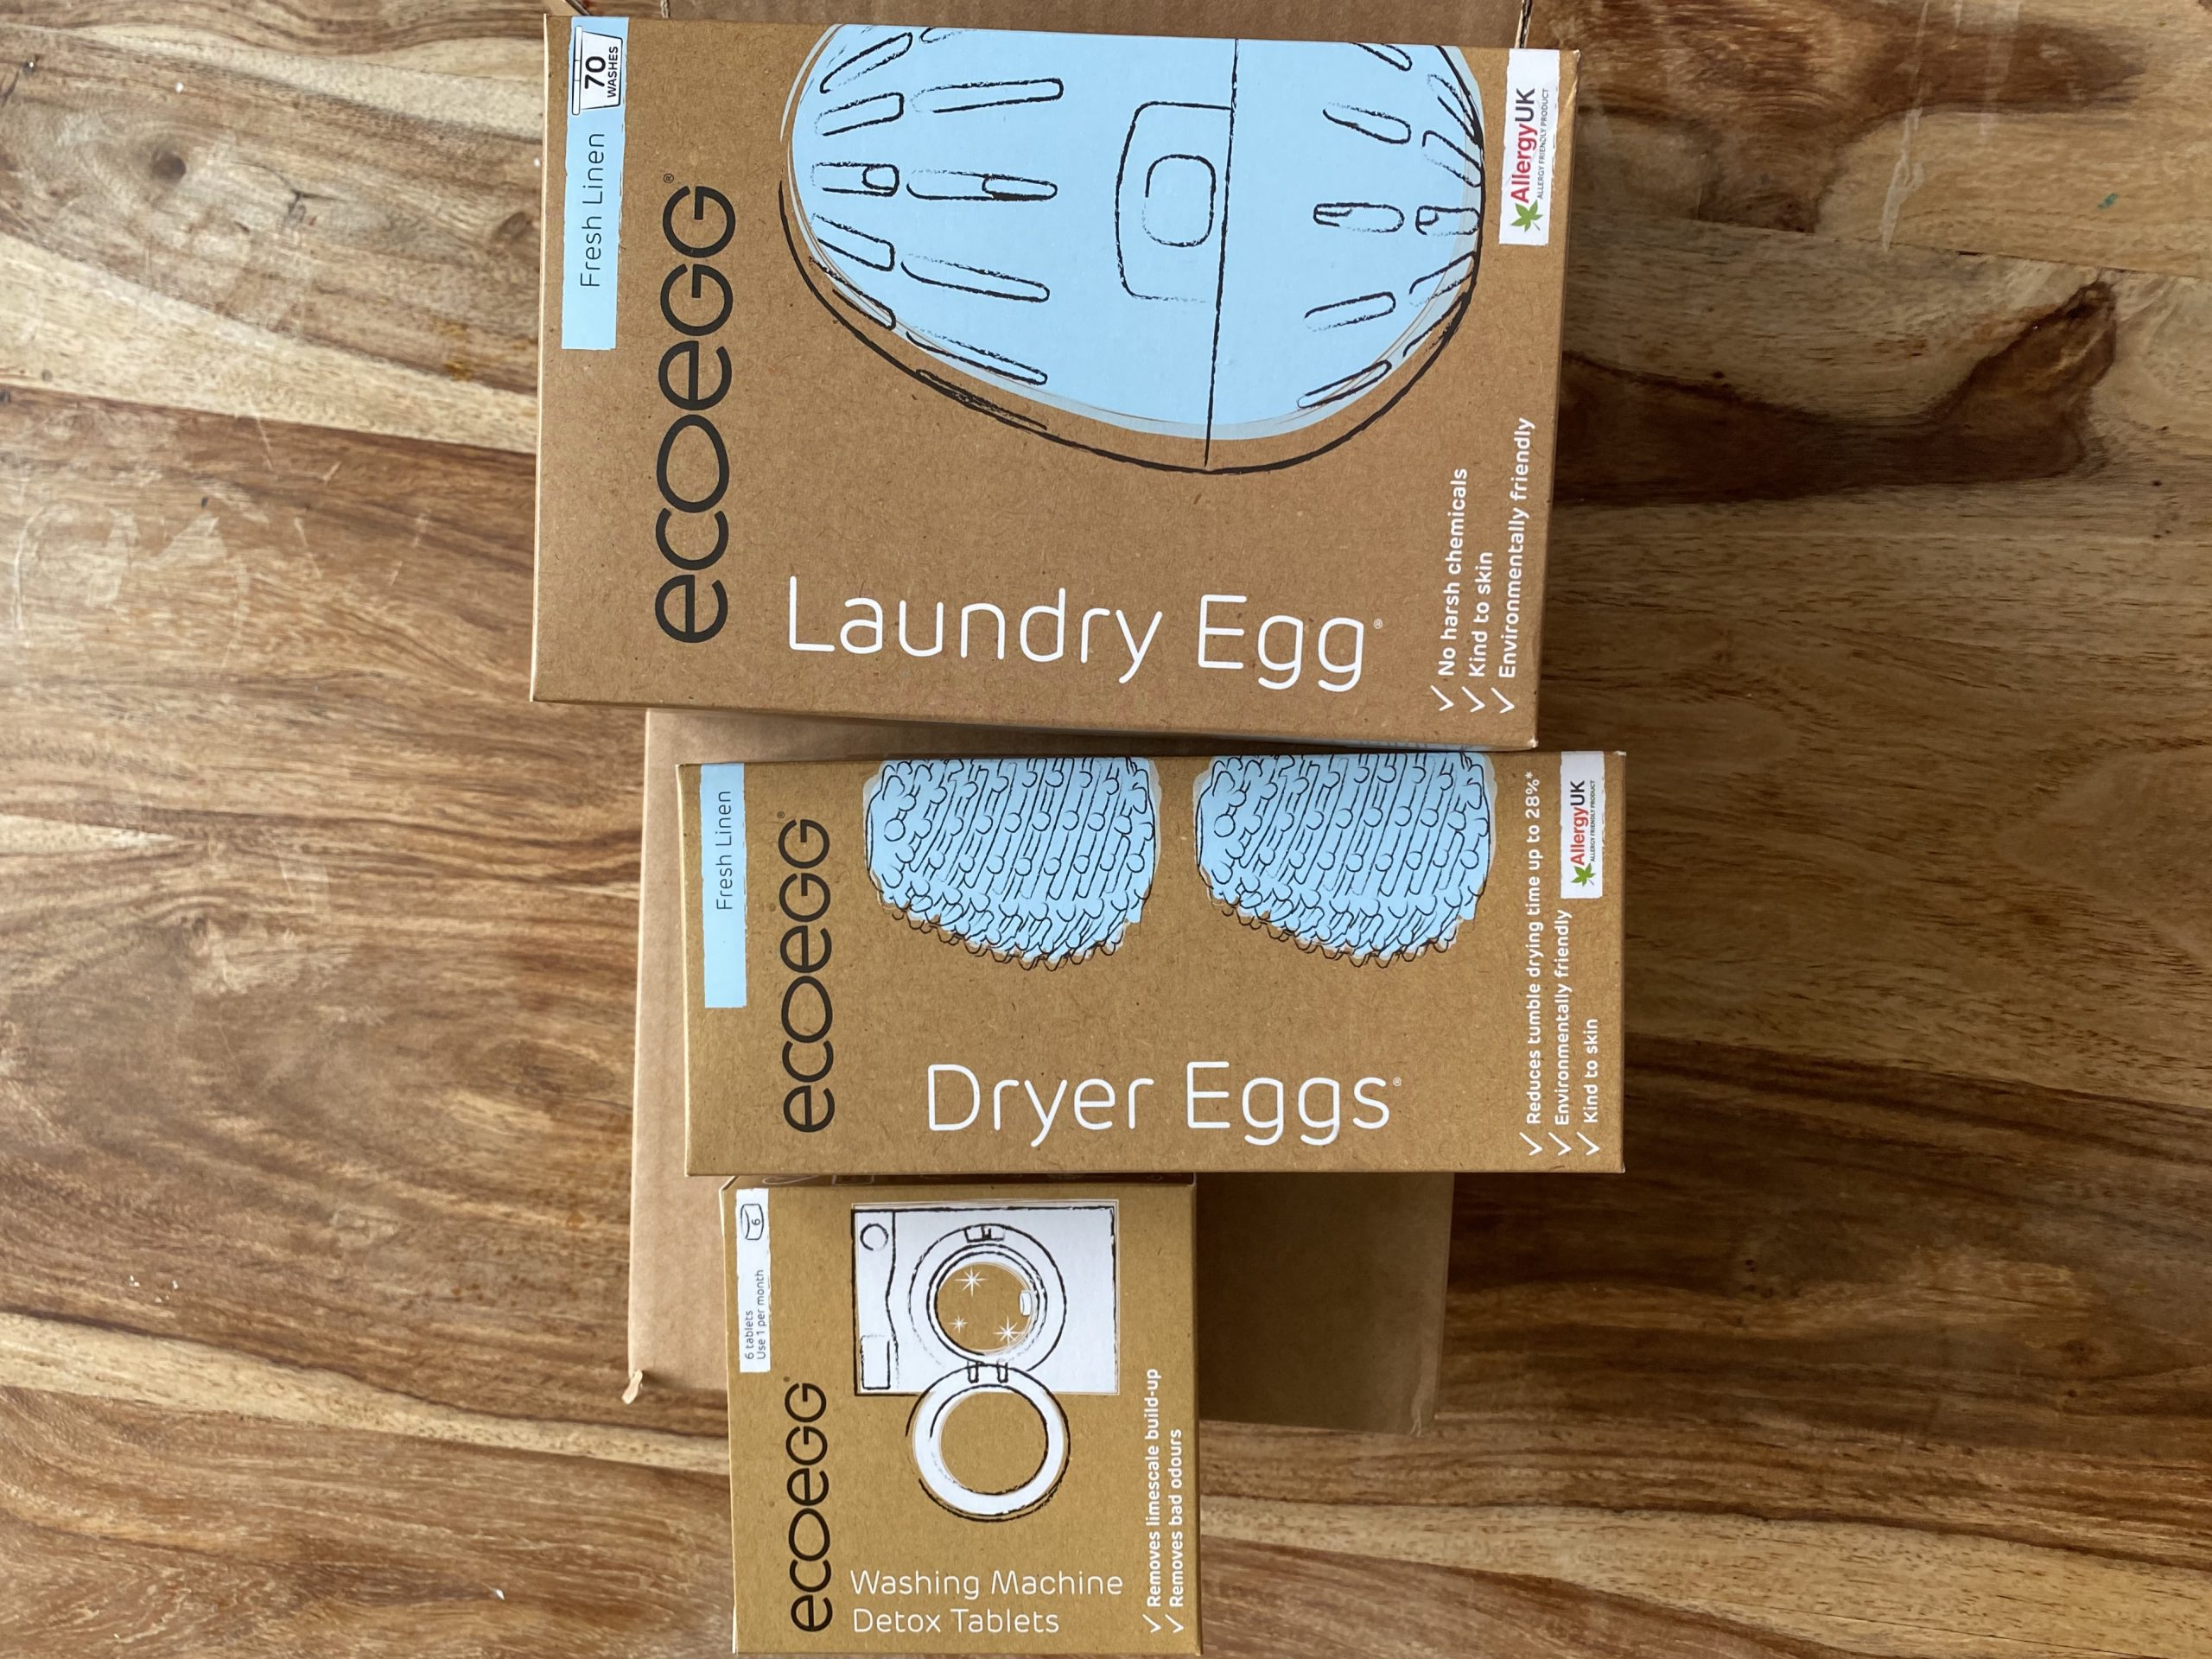 ecoegg review for laundry eggs, dryer eggs and detox tablets all in their packaging on a table.